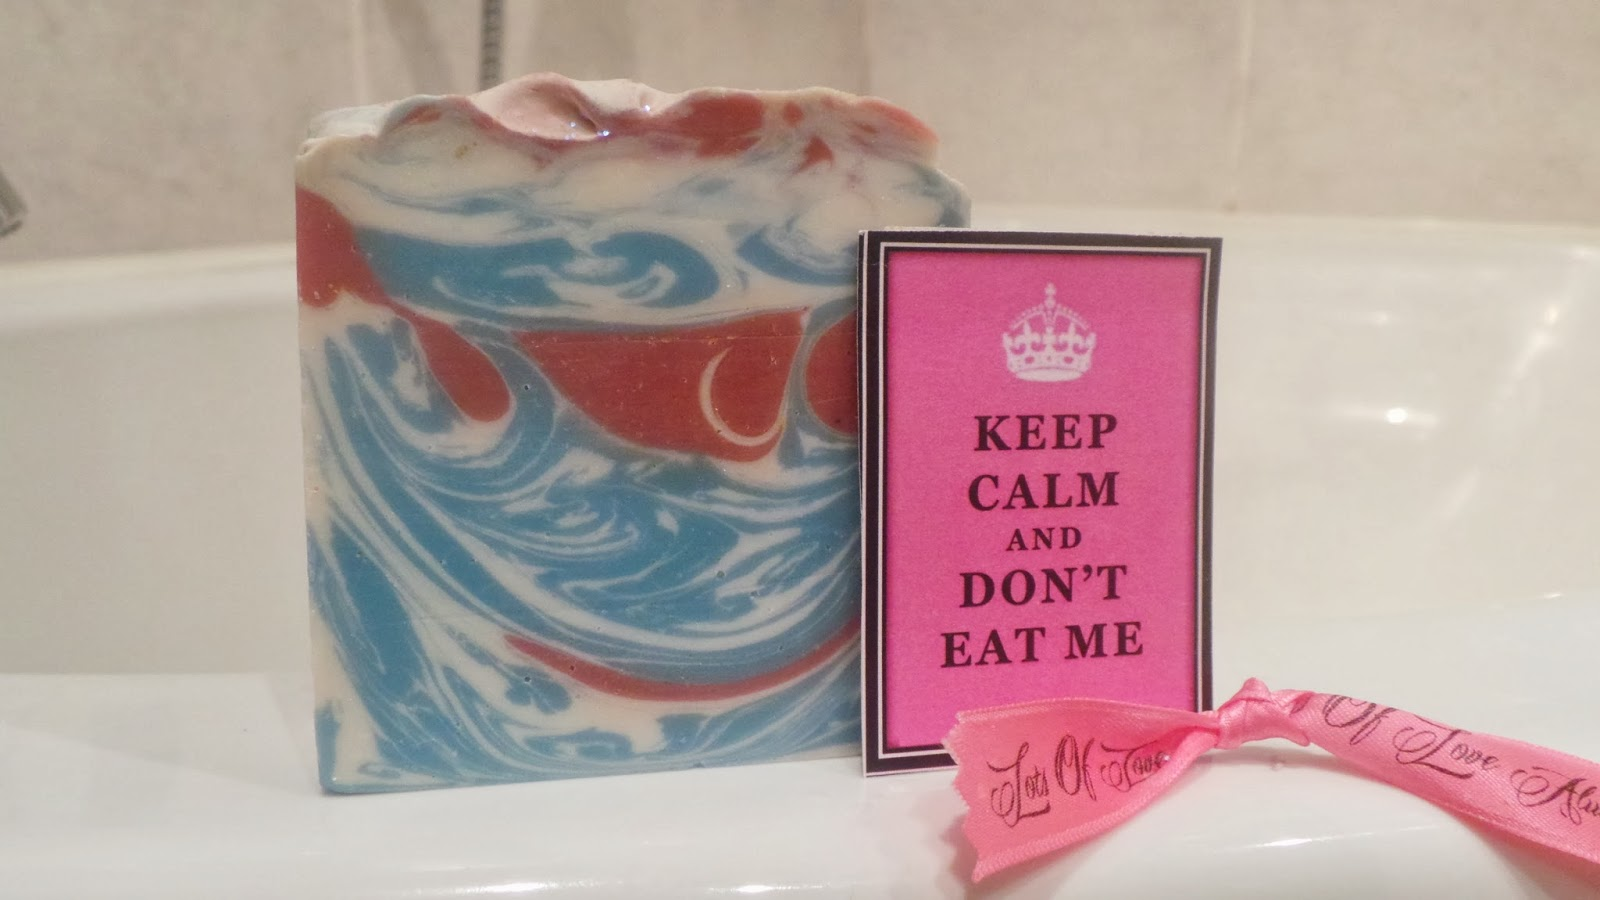 Keep calm soap